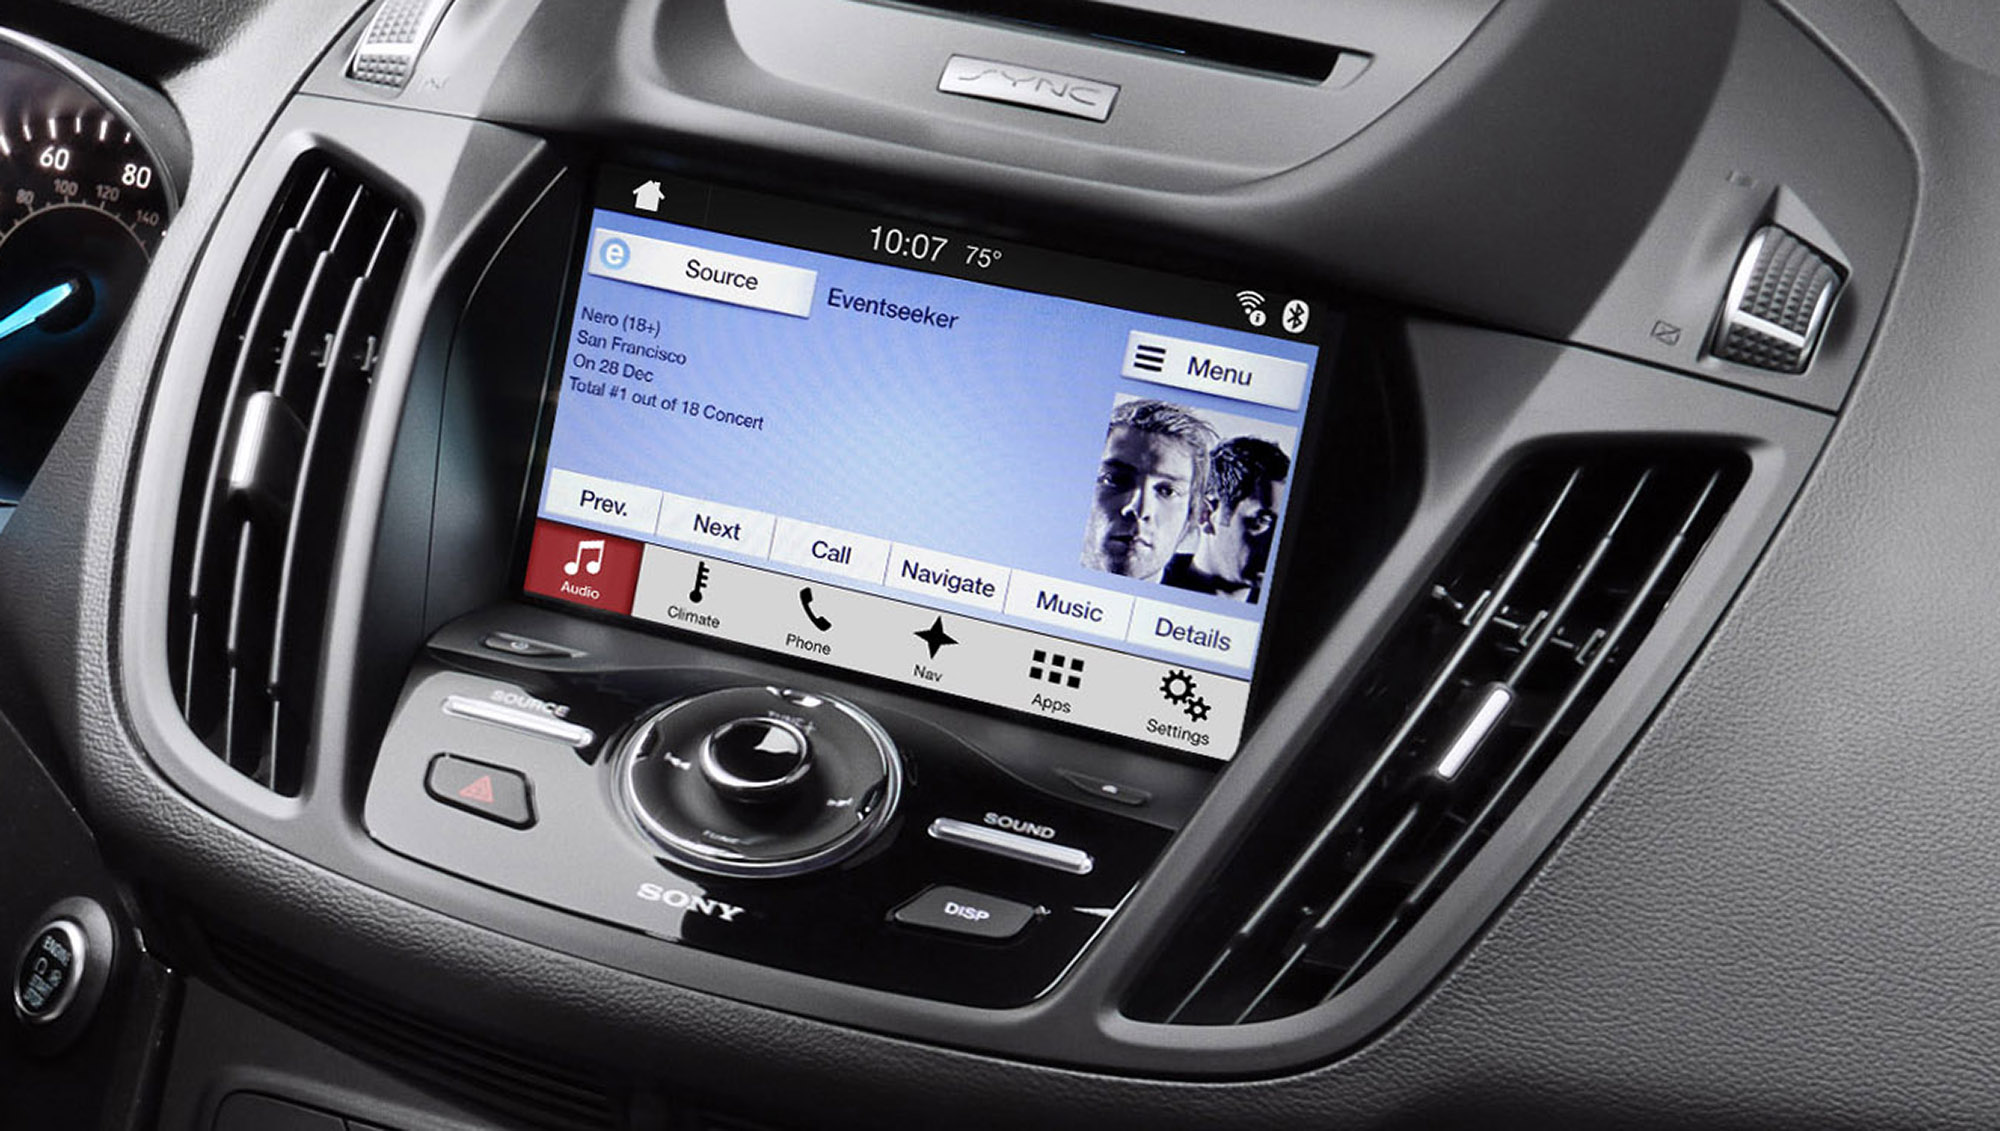 apple carplay and android auto come to ford sync 3 fiat chrysler uconnect photos 1 of 7. Black Bedroom Furniture Sets. Home Design Ideas